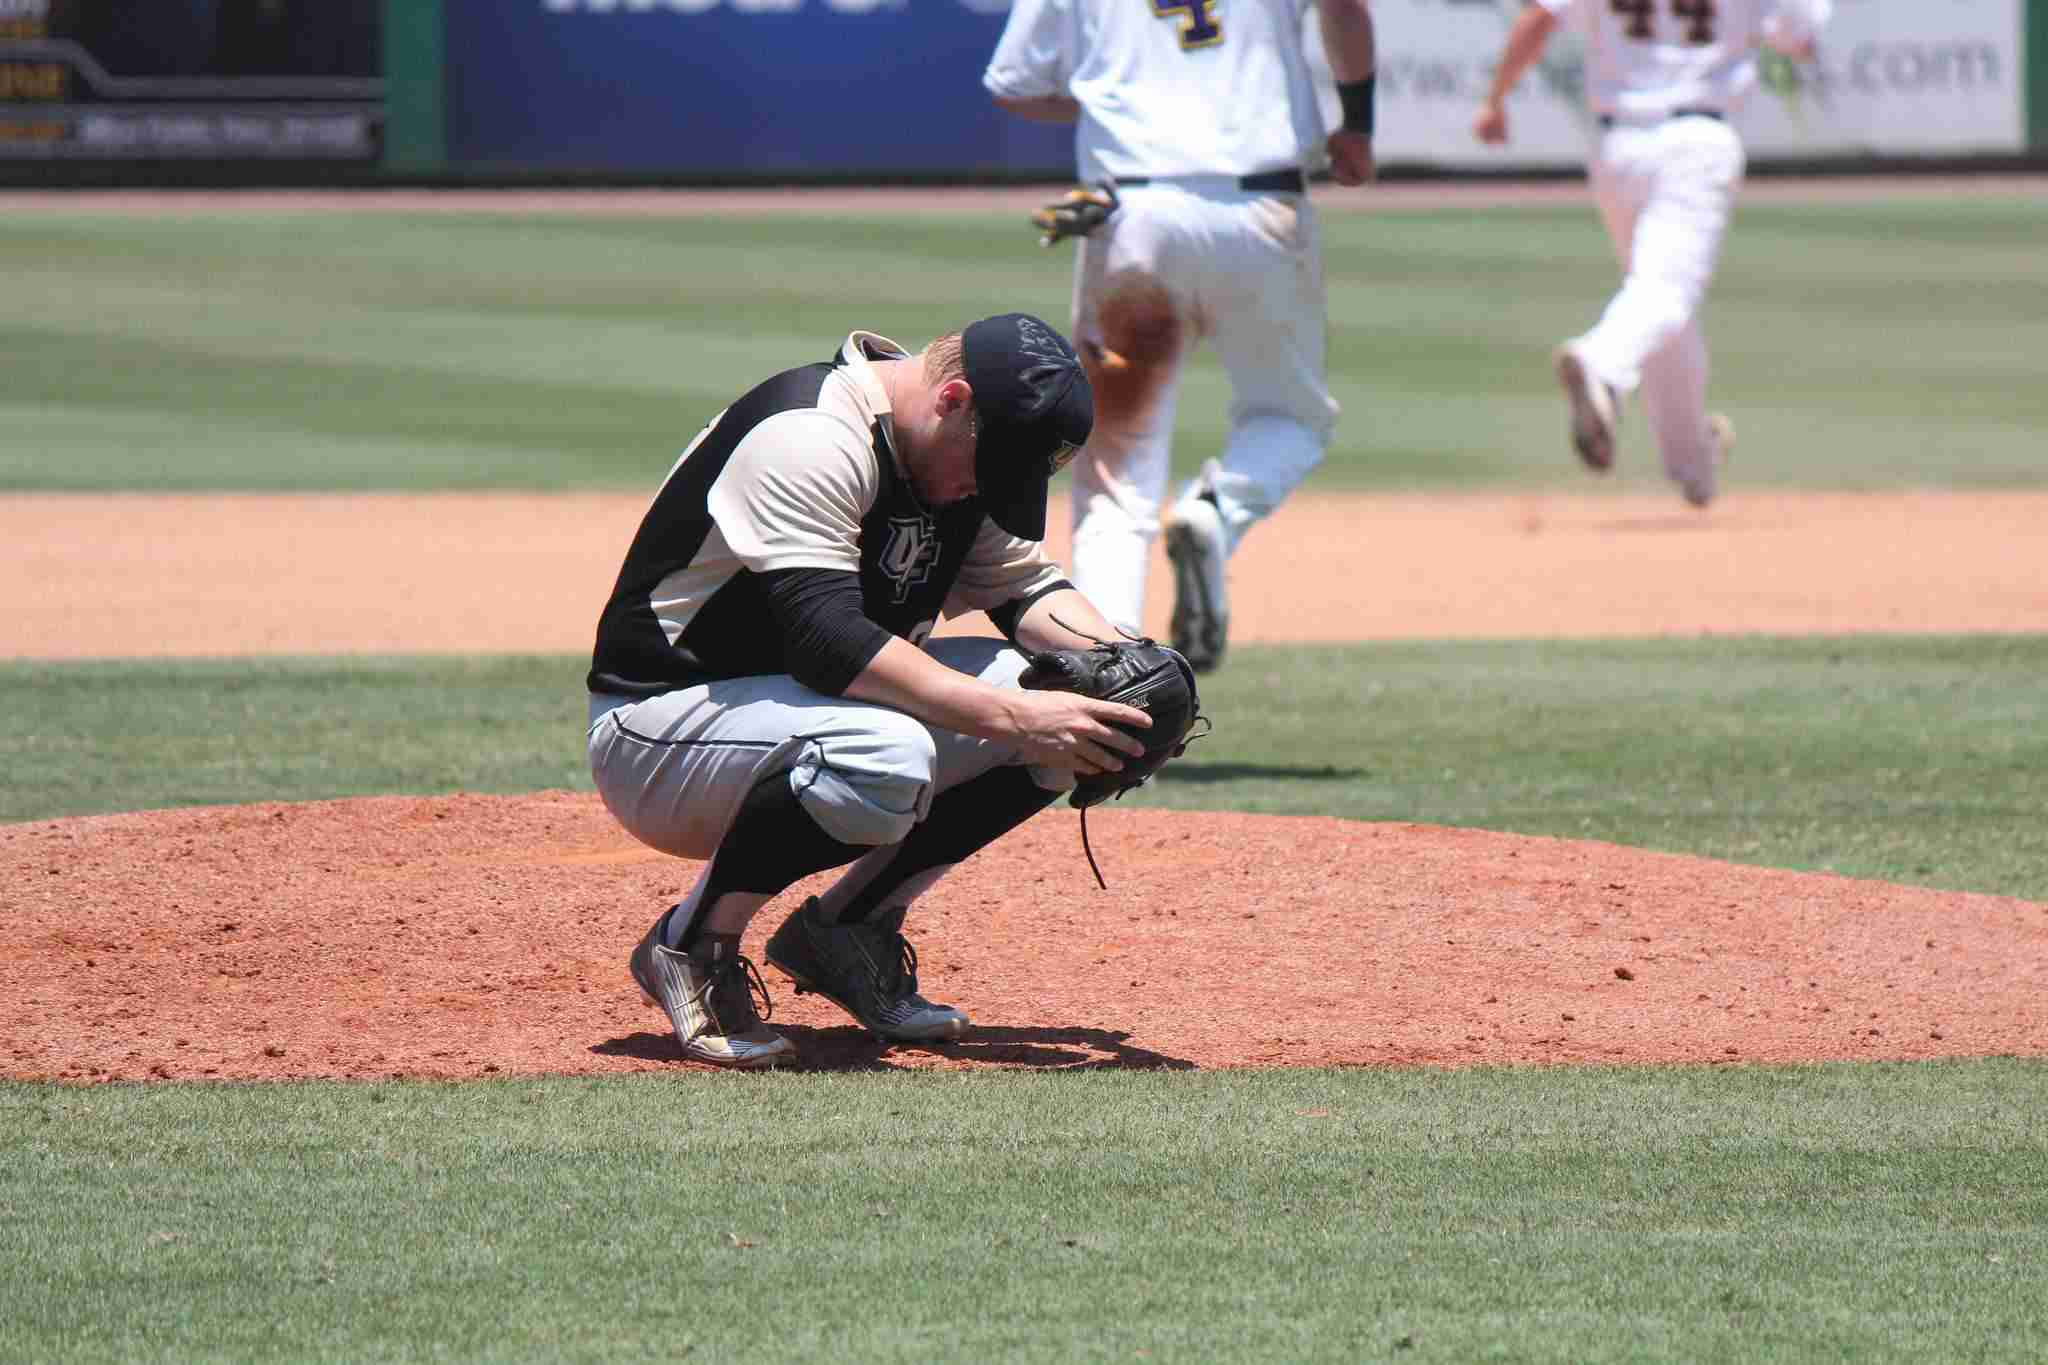 Knights starting pitcher Zach Rodgers suffered his first loss of the season on Wednesday.